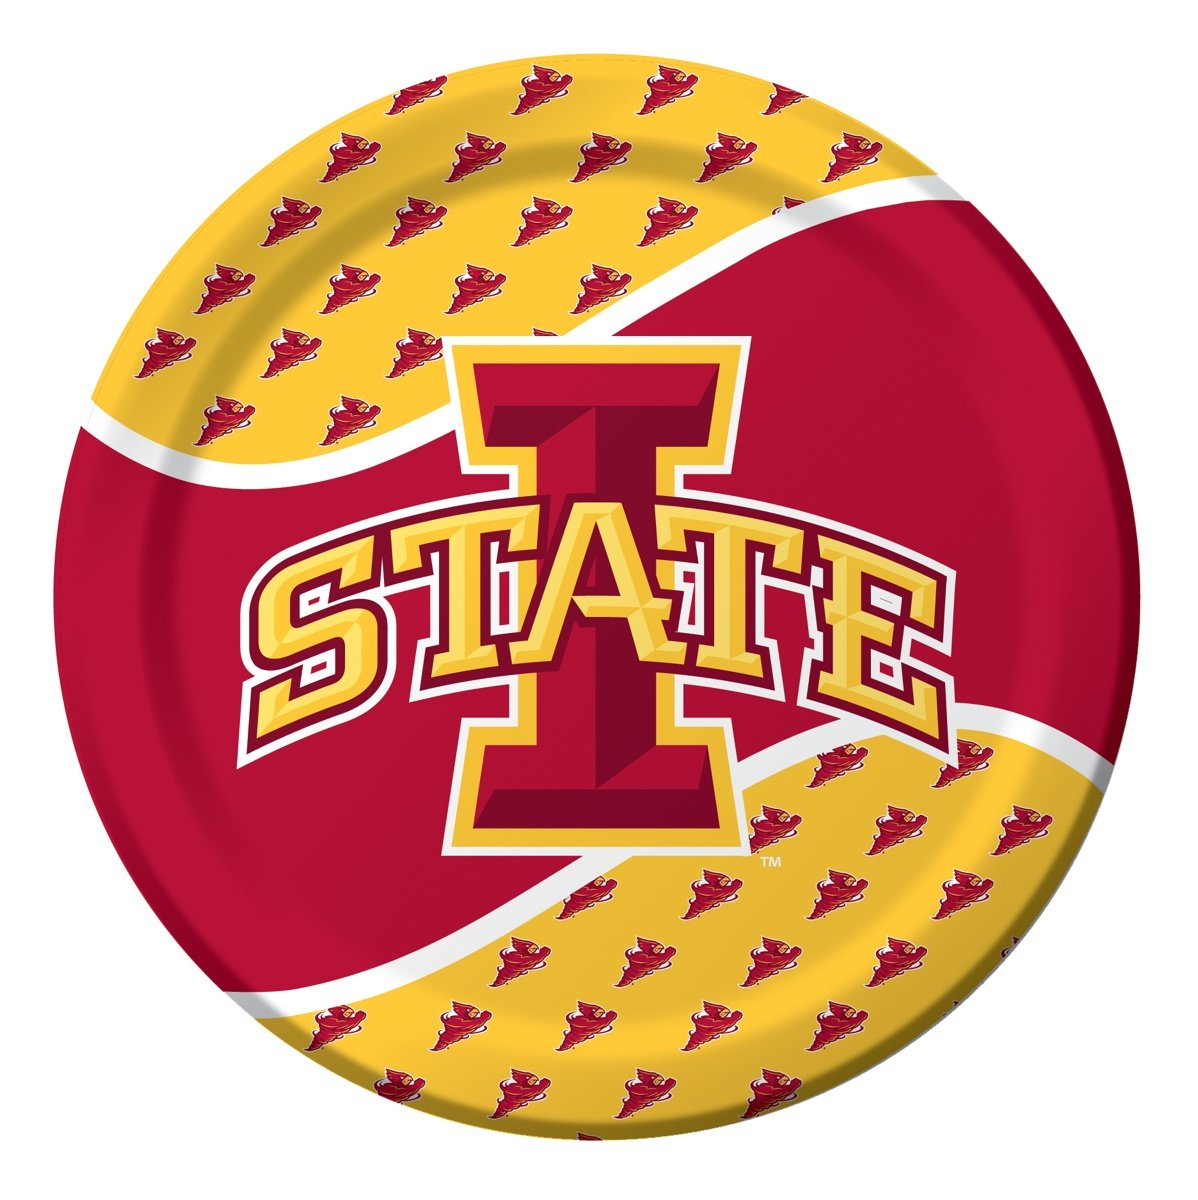 8-Count Paper Dinner Plates, Iowa State Cyclones